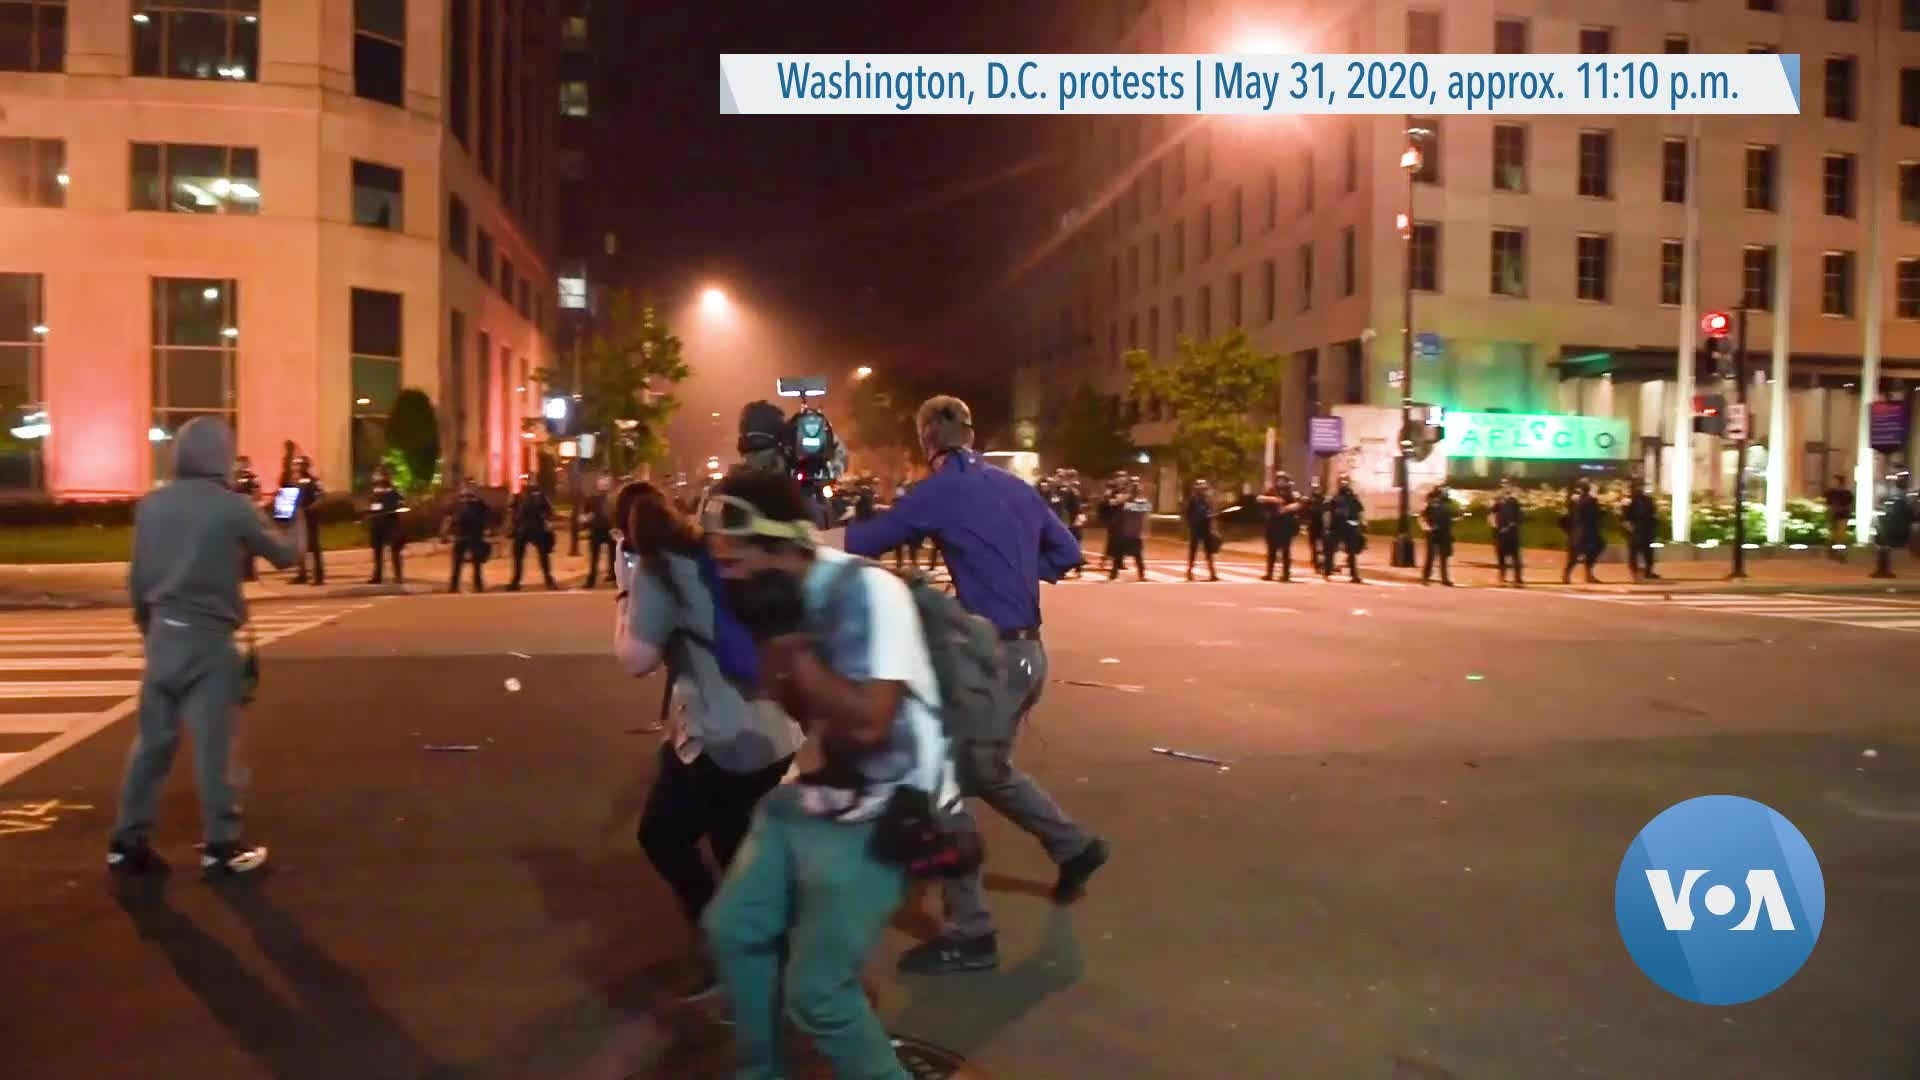 Projectile Fired in DC Protest